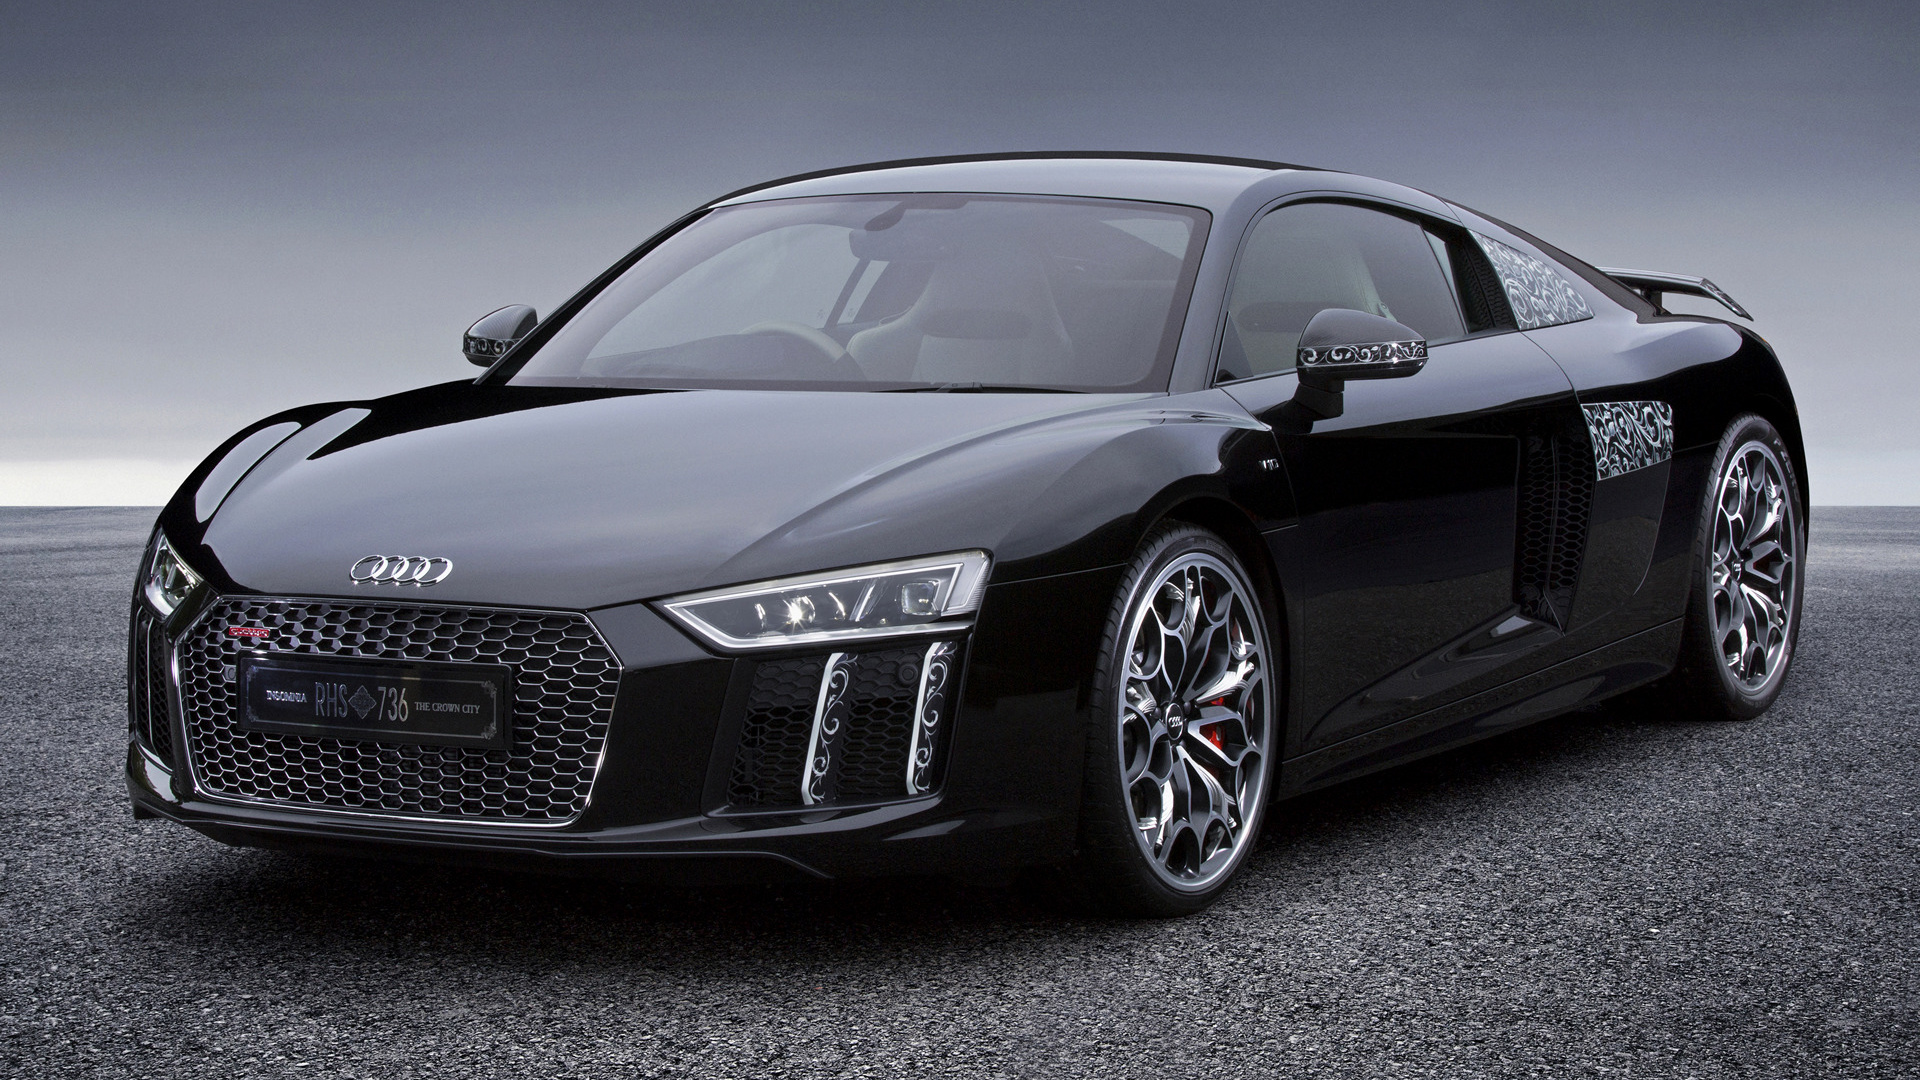 2016 Audi R8 V10 Plus Star Of Lucis Hd Wallpaper Background Image 1920x1080 Id 906804 Wallpaper Abyss